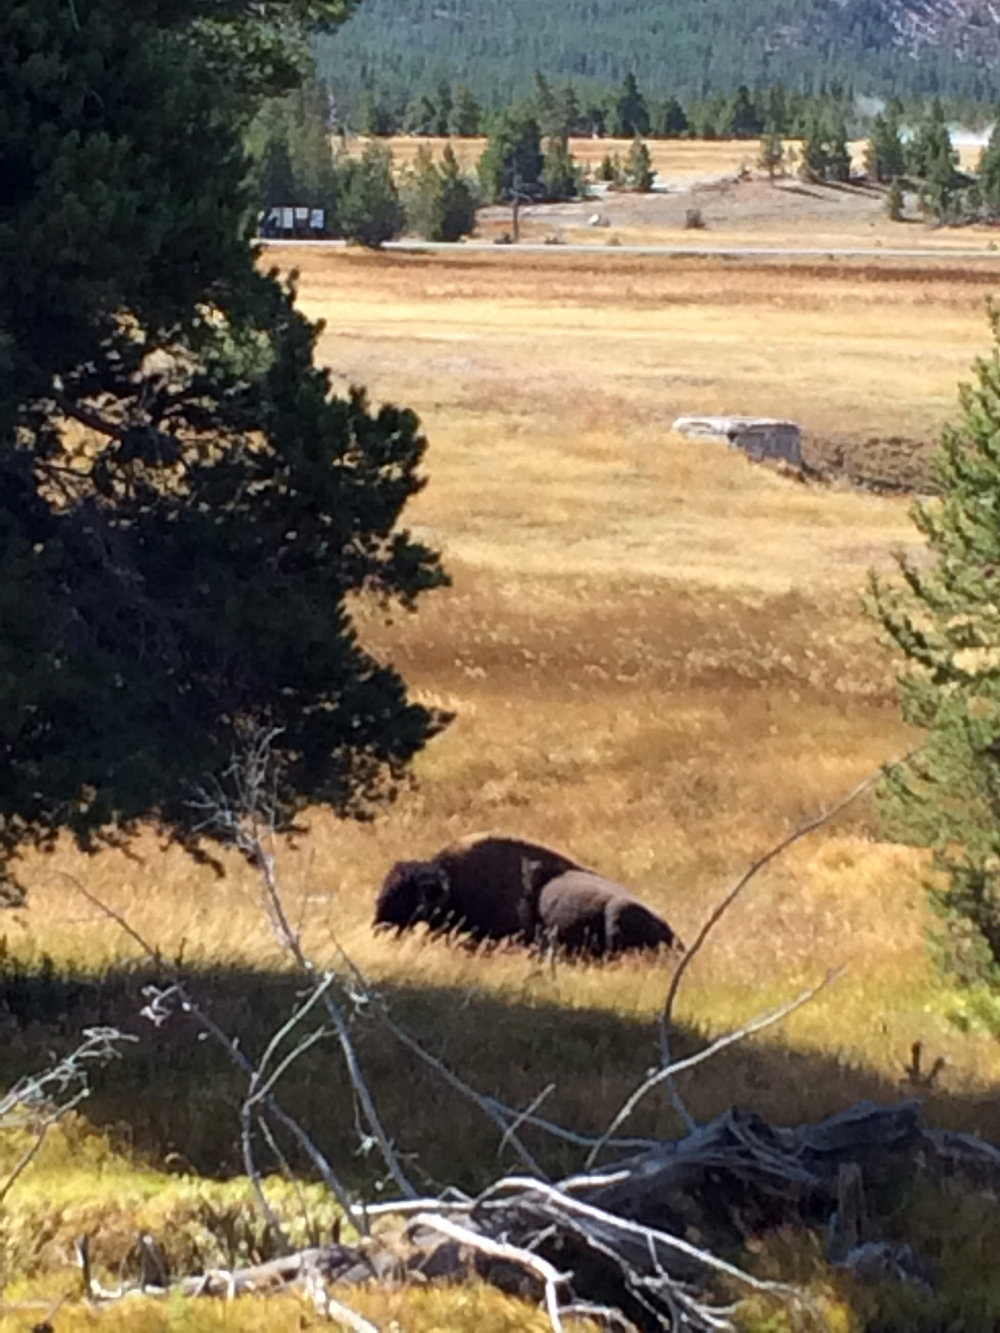 One of the loads of wild bison we saw basking in the sun (it's a good life).